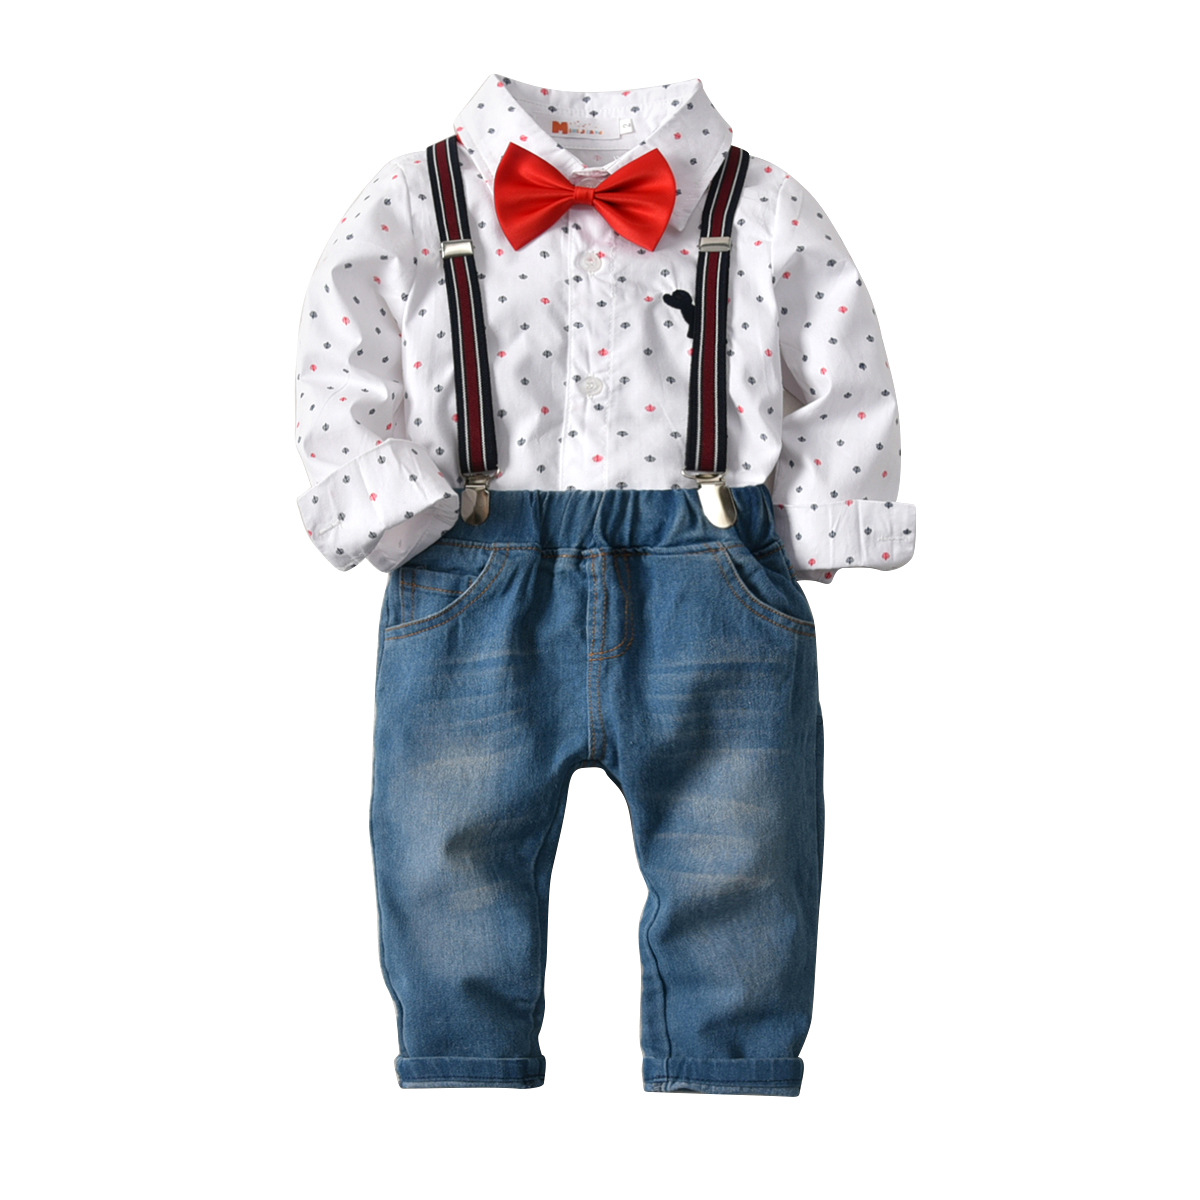 2018 boys' print long-sleeved shirt denim trousers suit children's gentleman's shirt four pieces children's suit